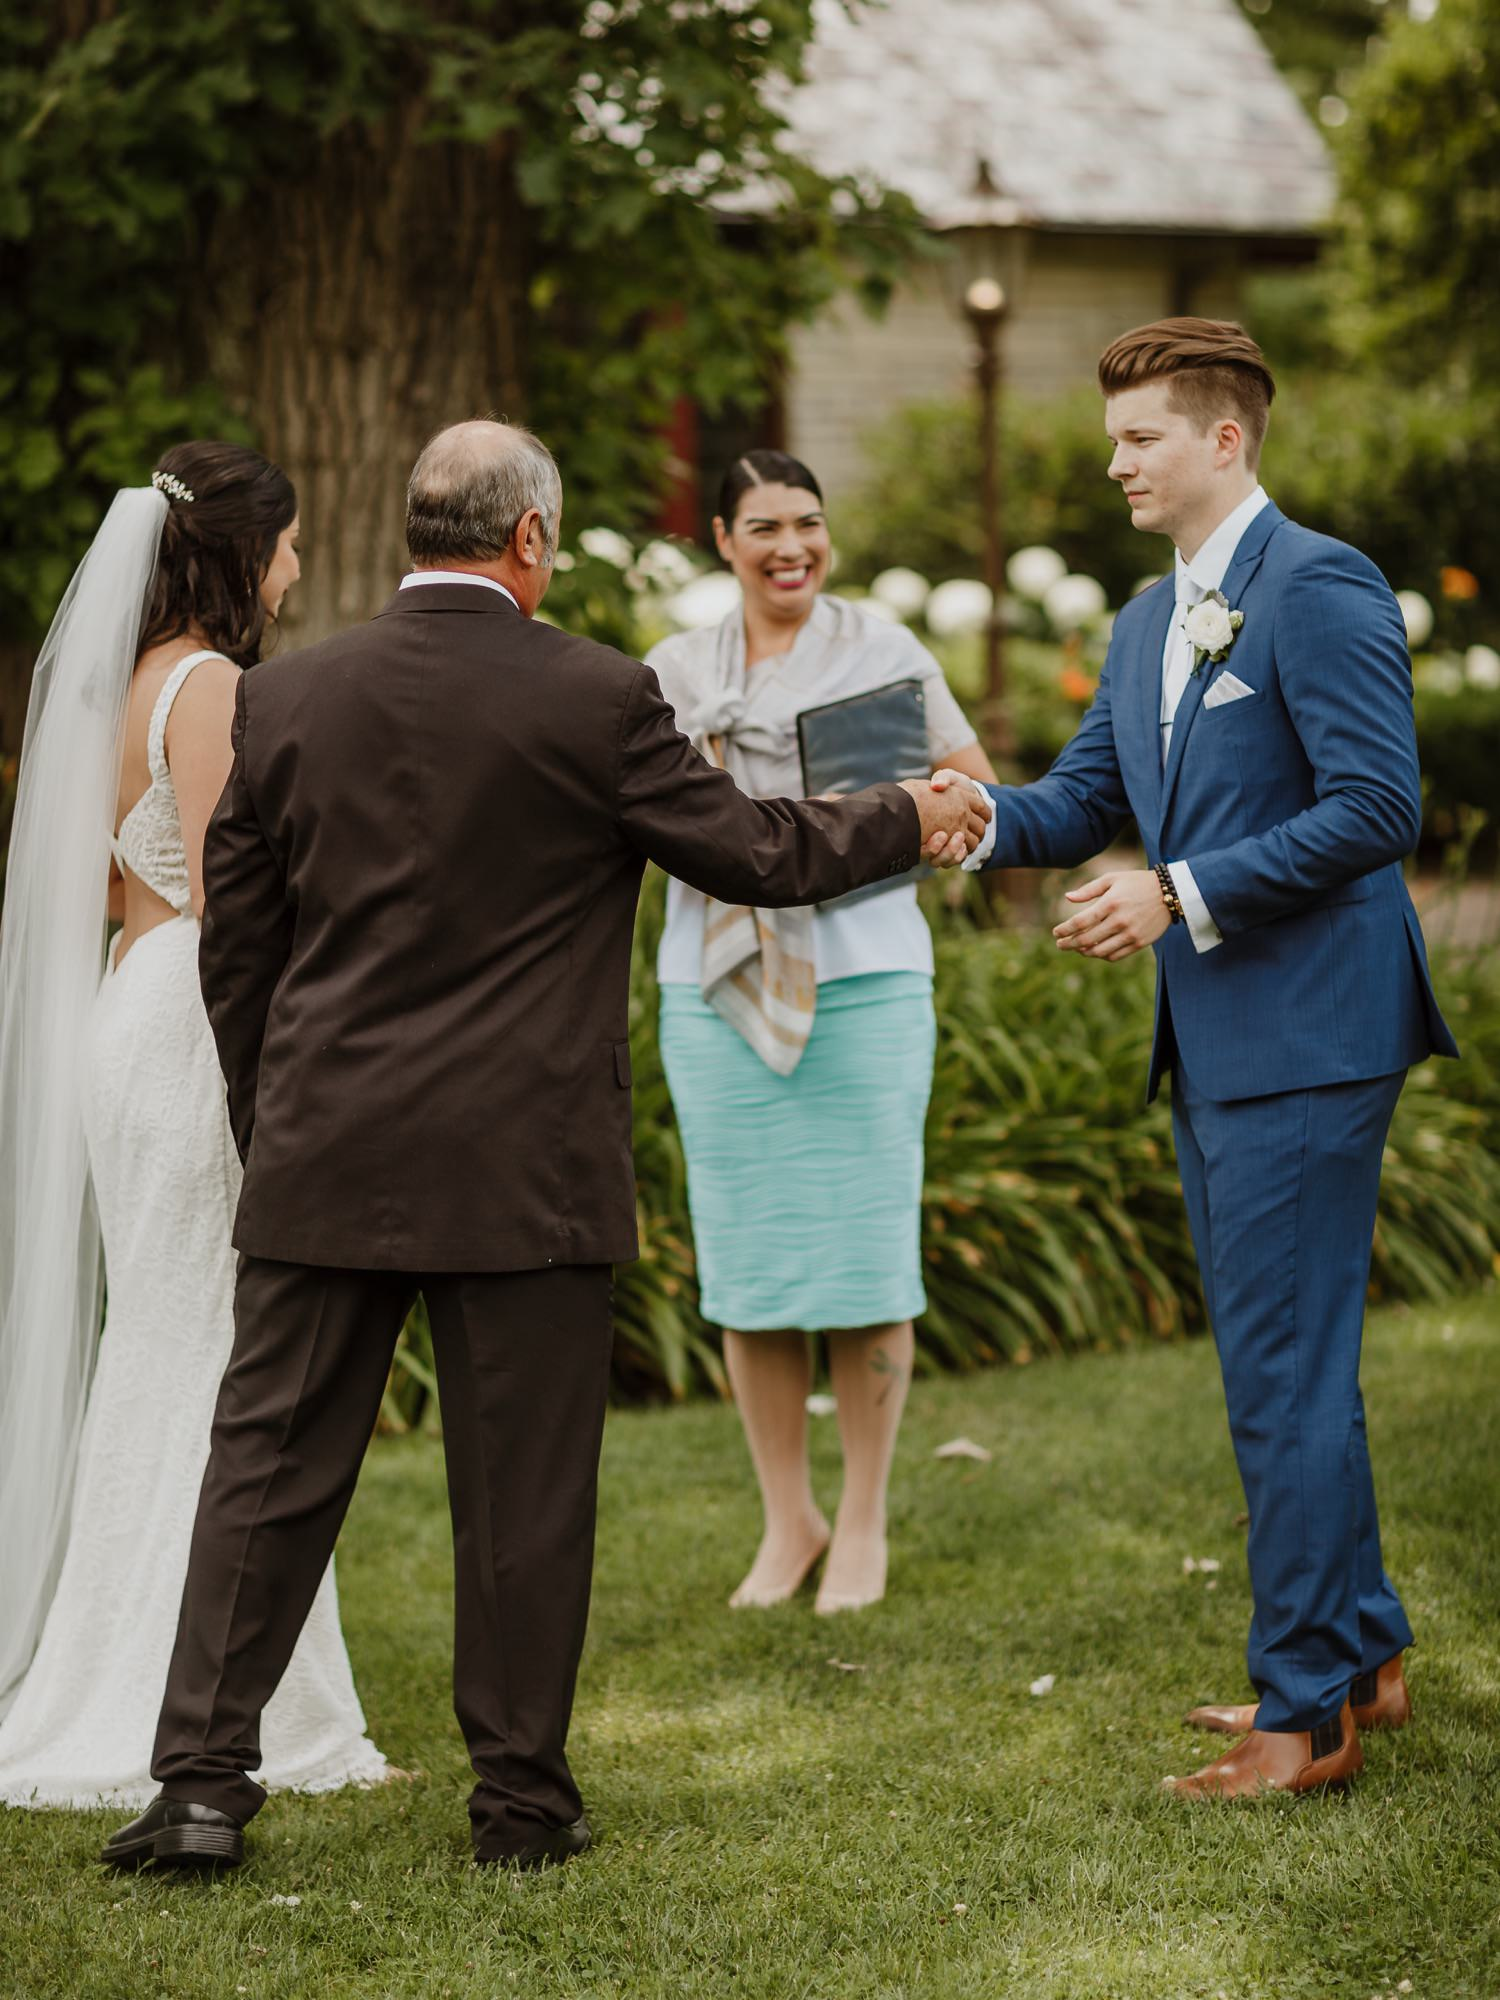 Groom shakes hands with the father of the bride at the wedding ceremony at Redfield Estate